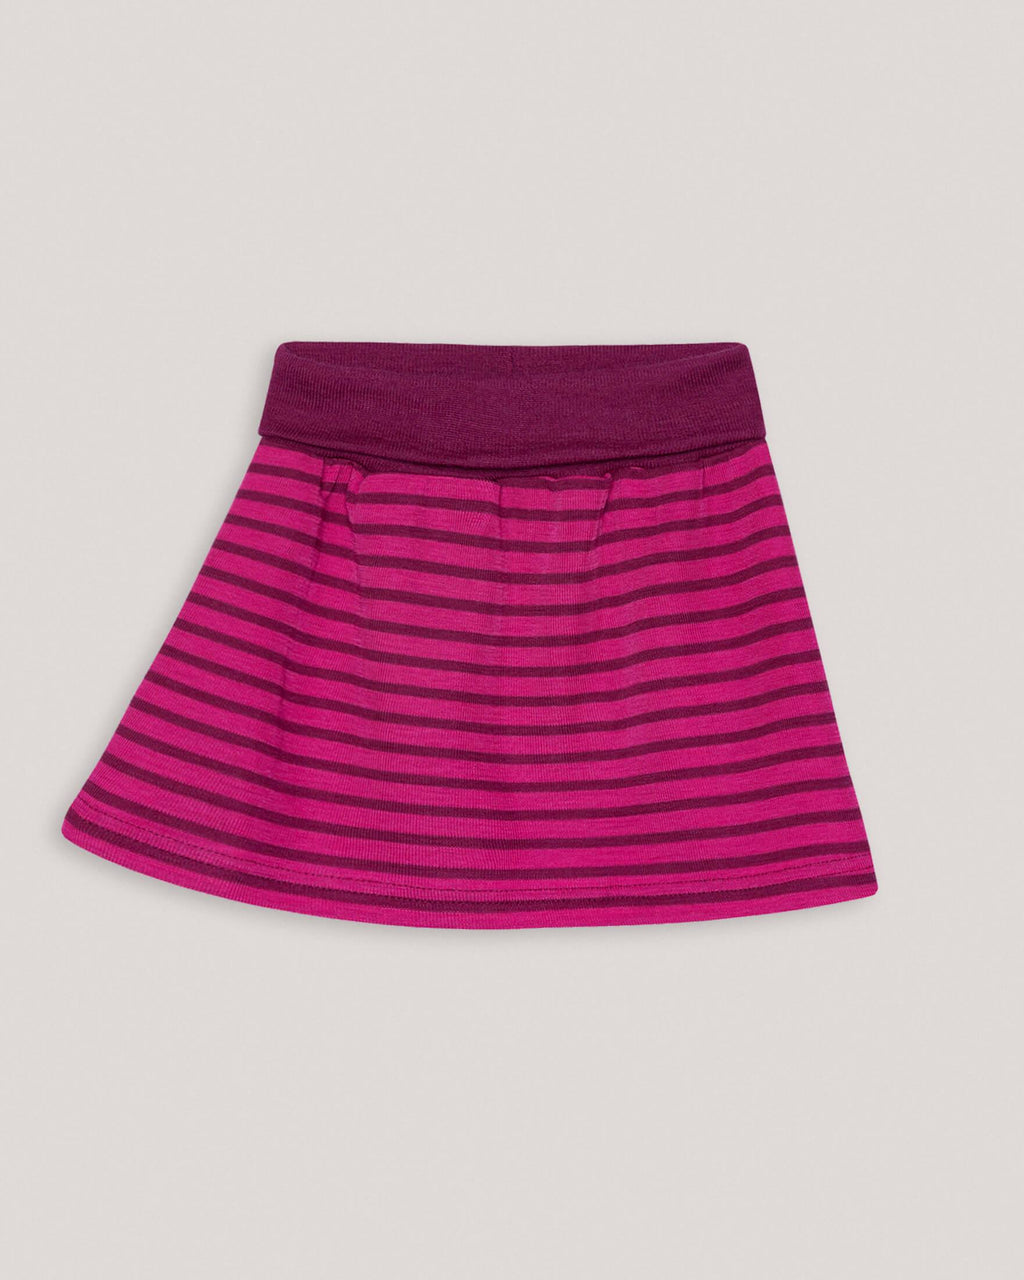 variant_2 | EN Pink Skirt Kids Stripes | DE Pink Rock Kinder mit Streifen